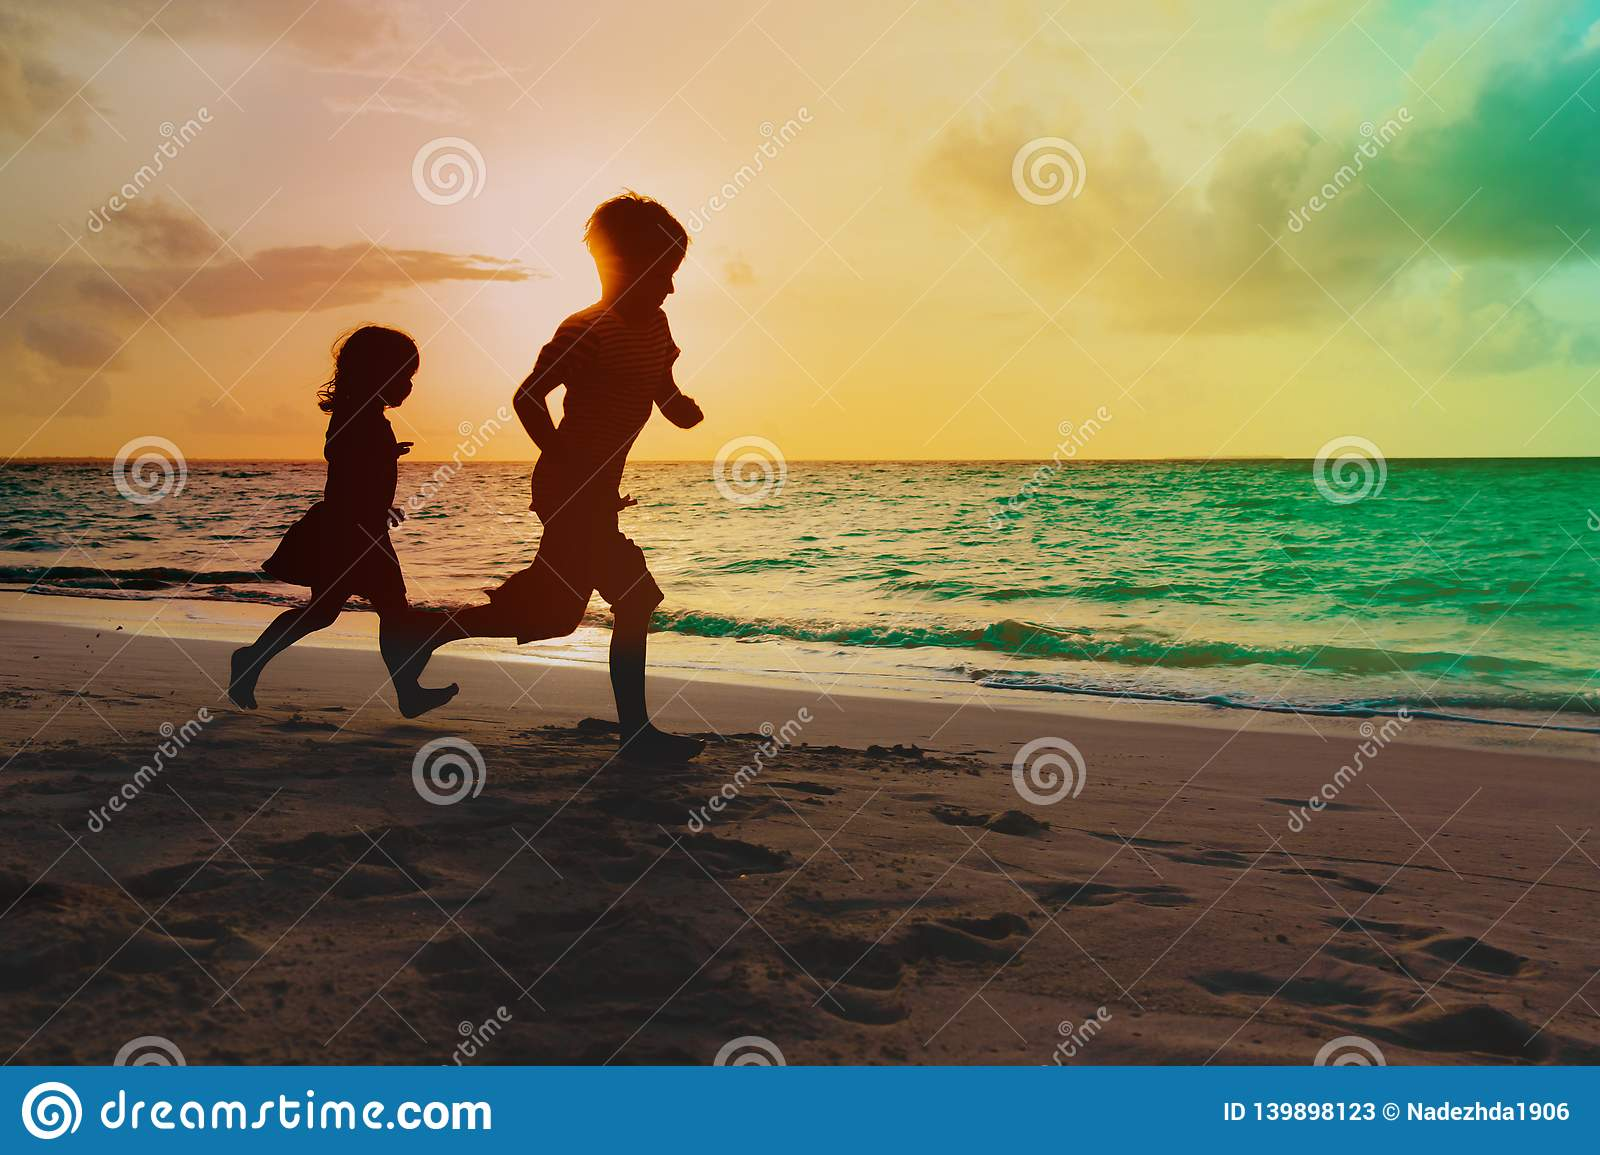 Little boy and girl run play at sunset tropical beach